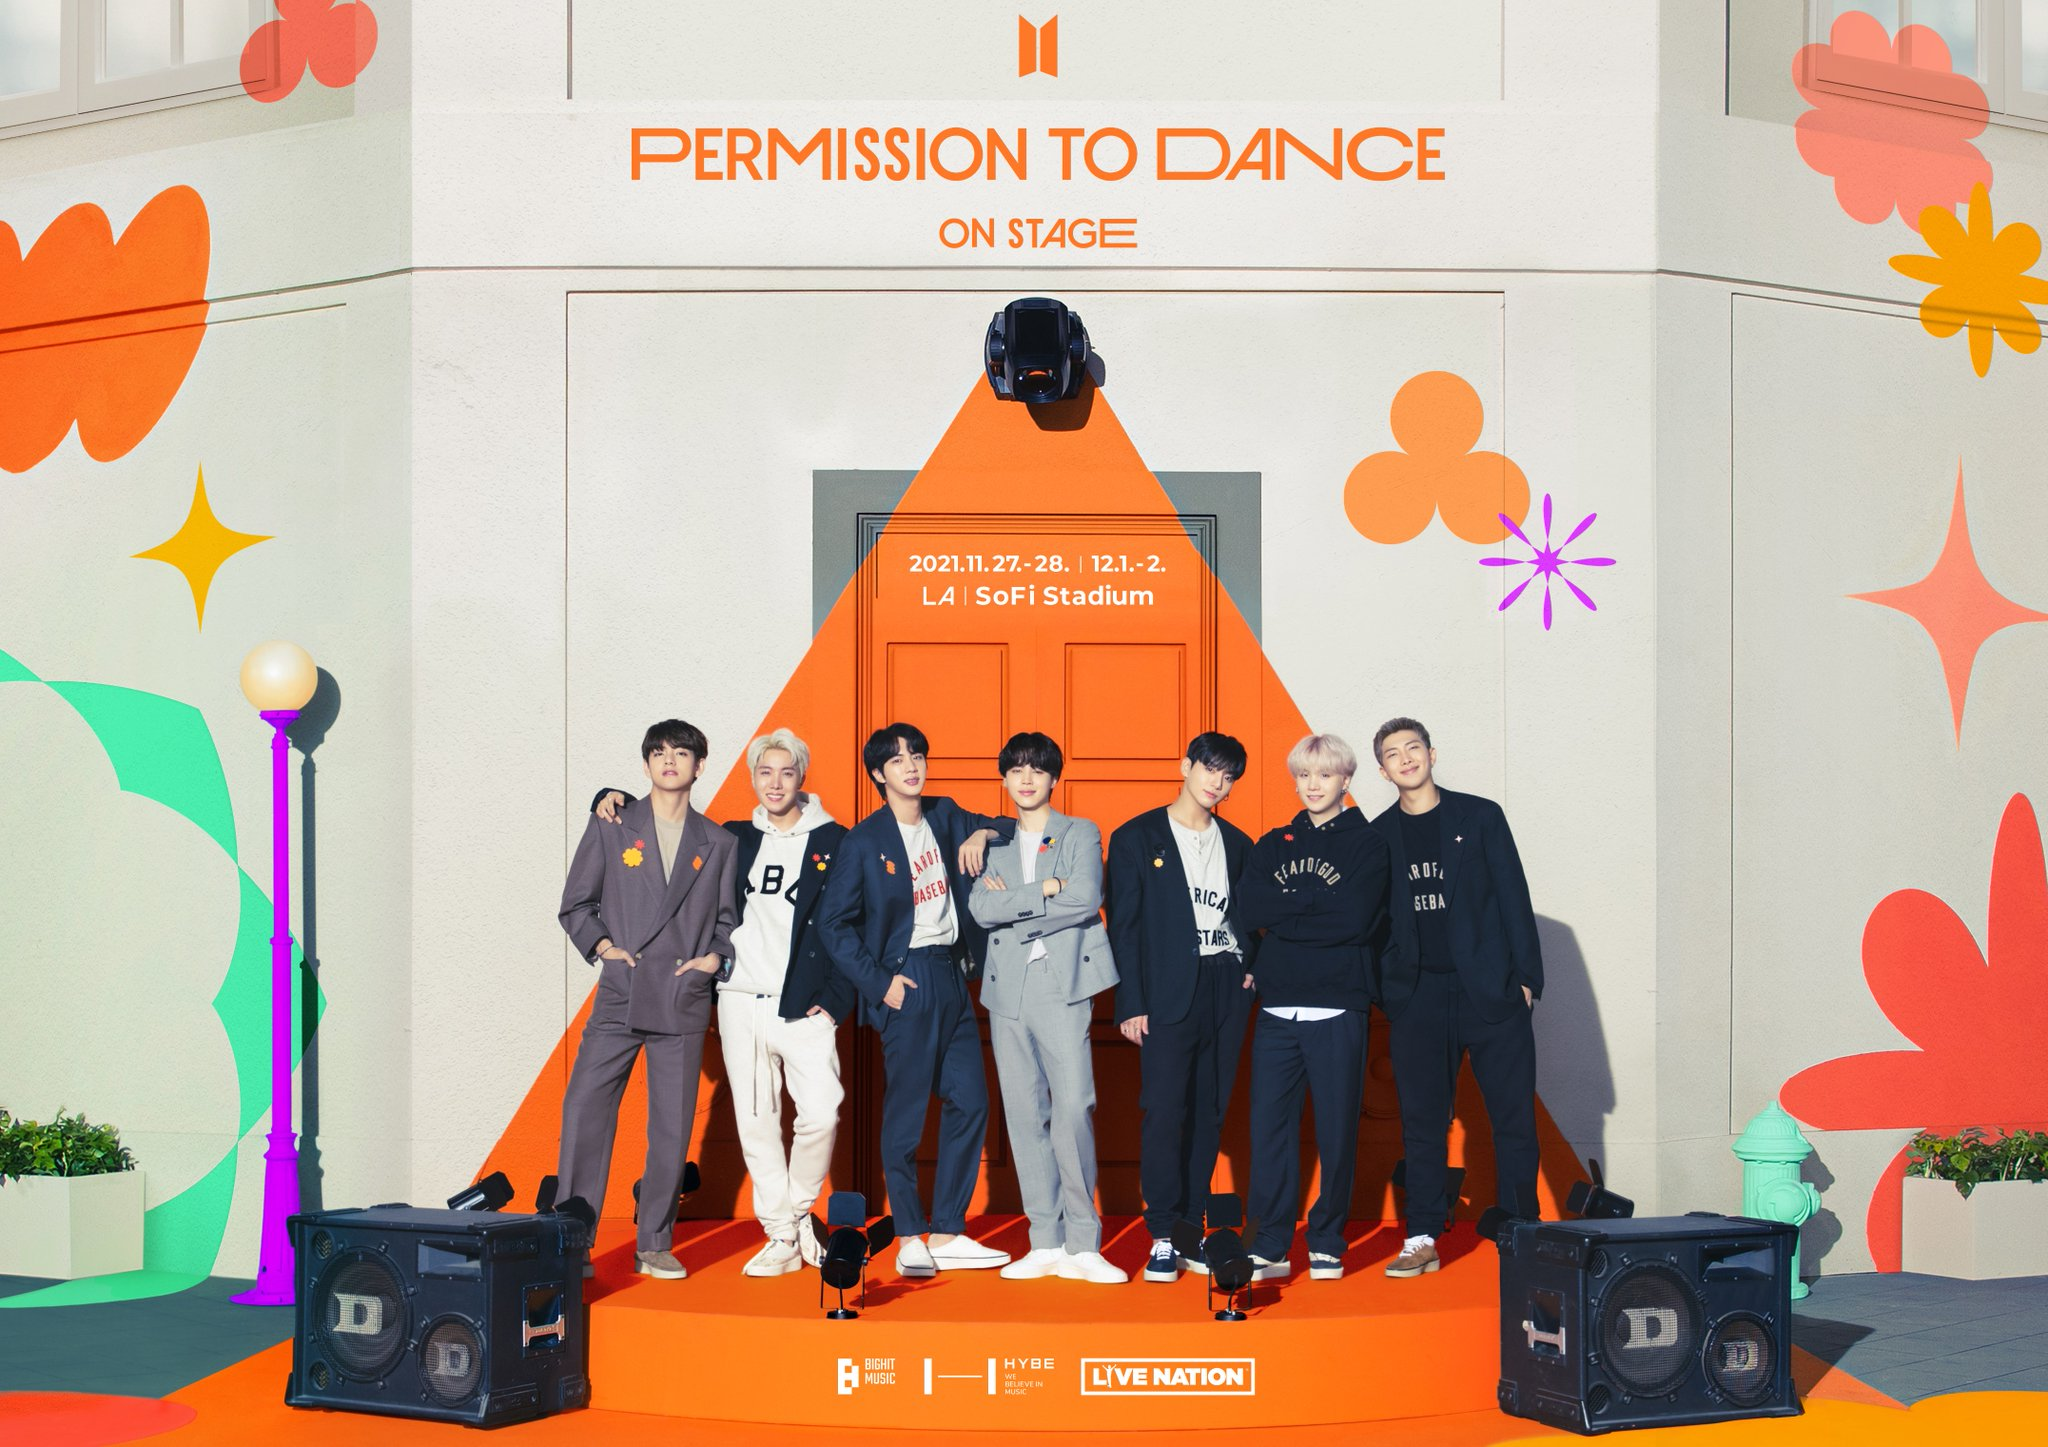 Concert poster for BTS Permission to Dance On Stage LA